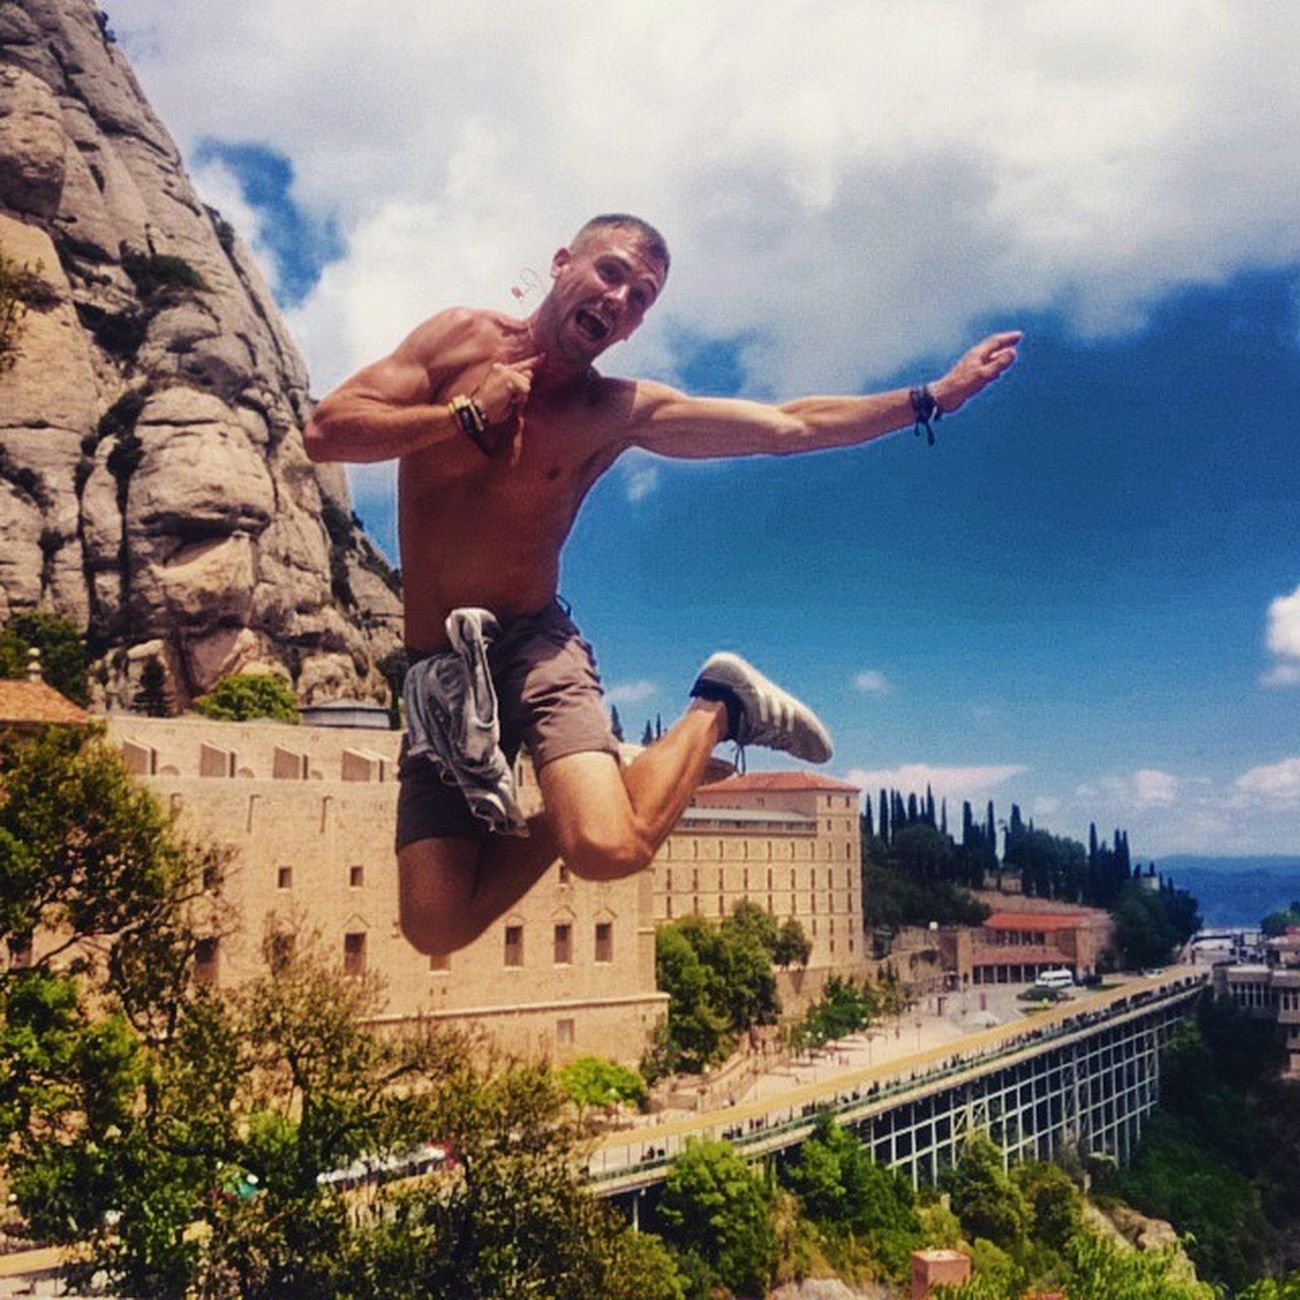 GettingHigh Travellingeveryday Romanticadventures 2ndDate Jump Jumping Jumpshot Love Adventure Explore Conquer Travel Instagood Lovesundays Newadventureeveryday LovingLife Montserrat Catalonia Europe SPAIN Cool Awesome Catholic Historic Cathedral religion culture